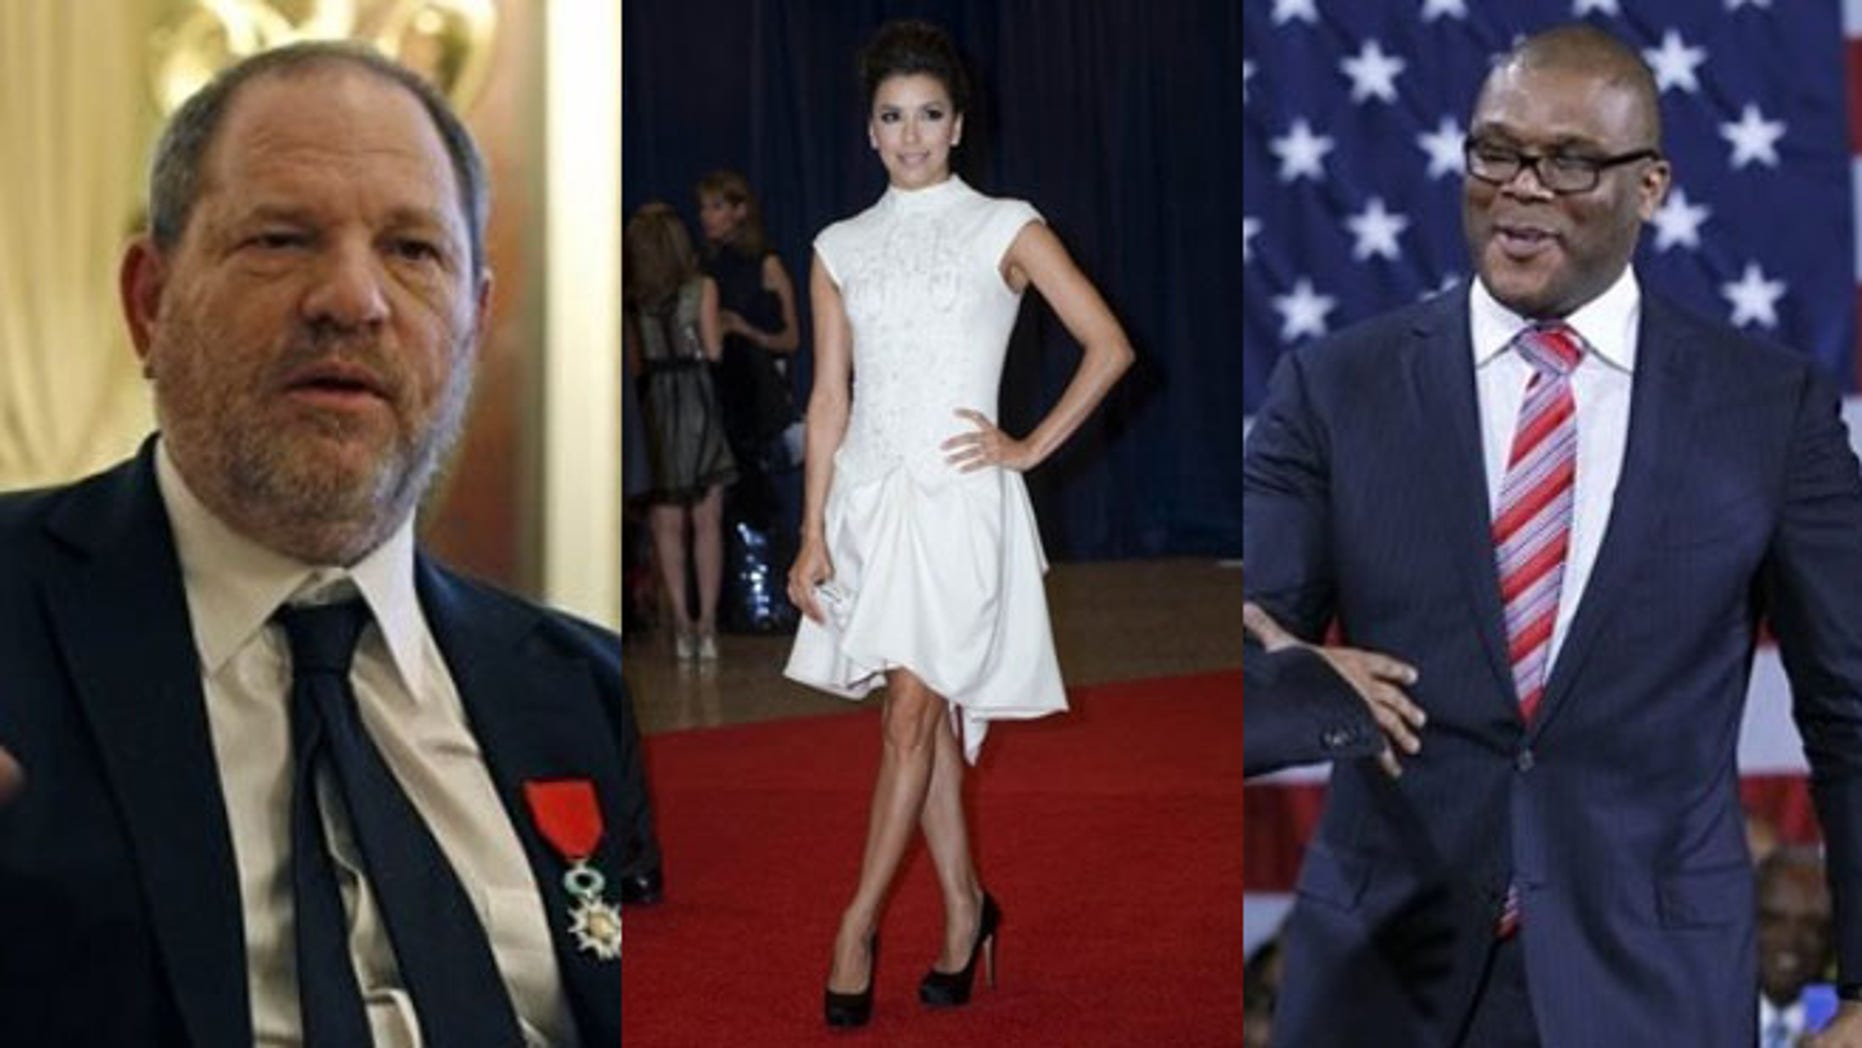 Shown here, from left to right, are producer Harvey Weinstein, actress Eva Longoria and actor Tyler Perry.